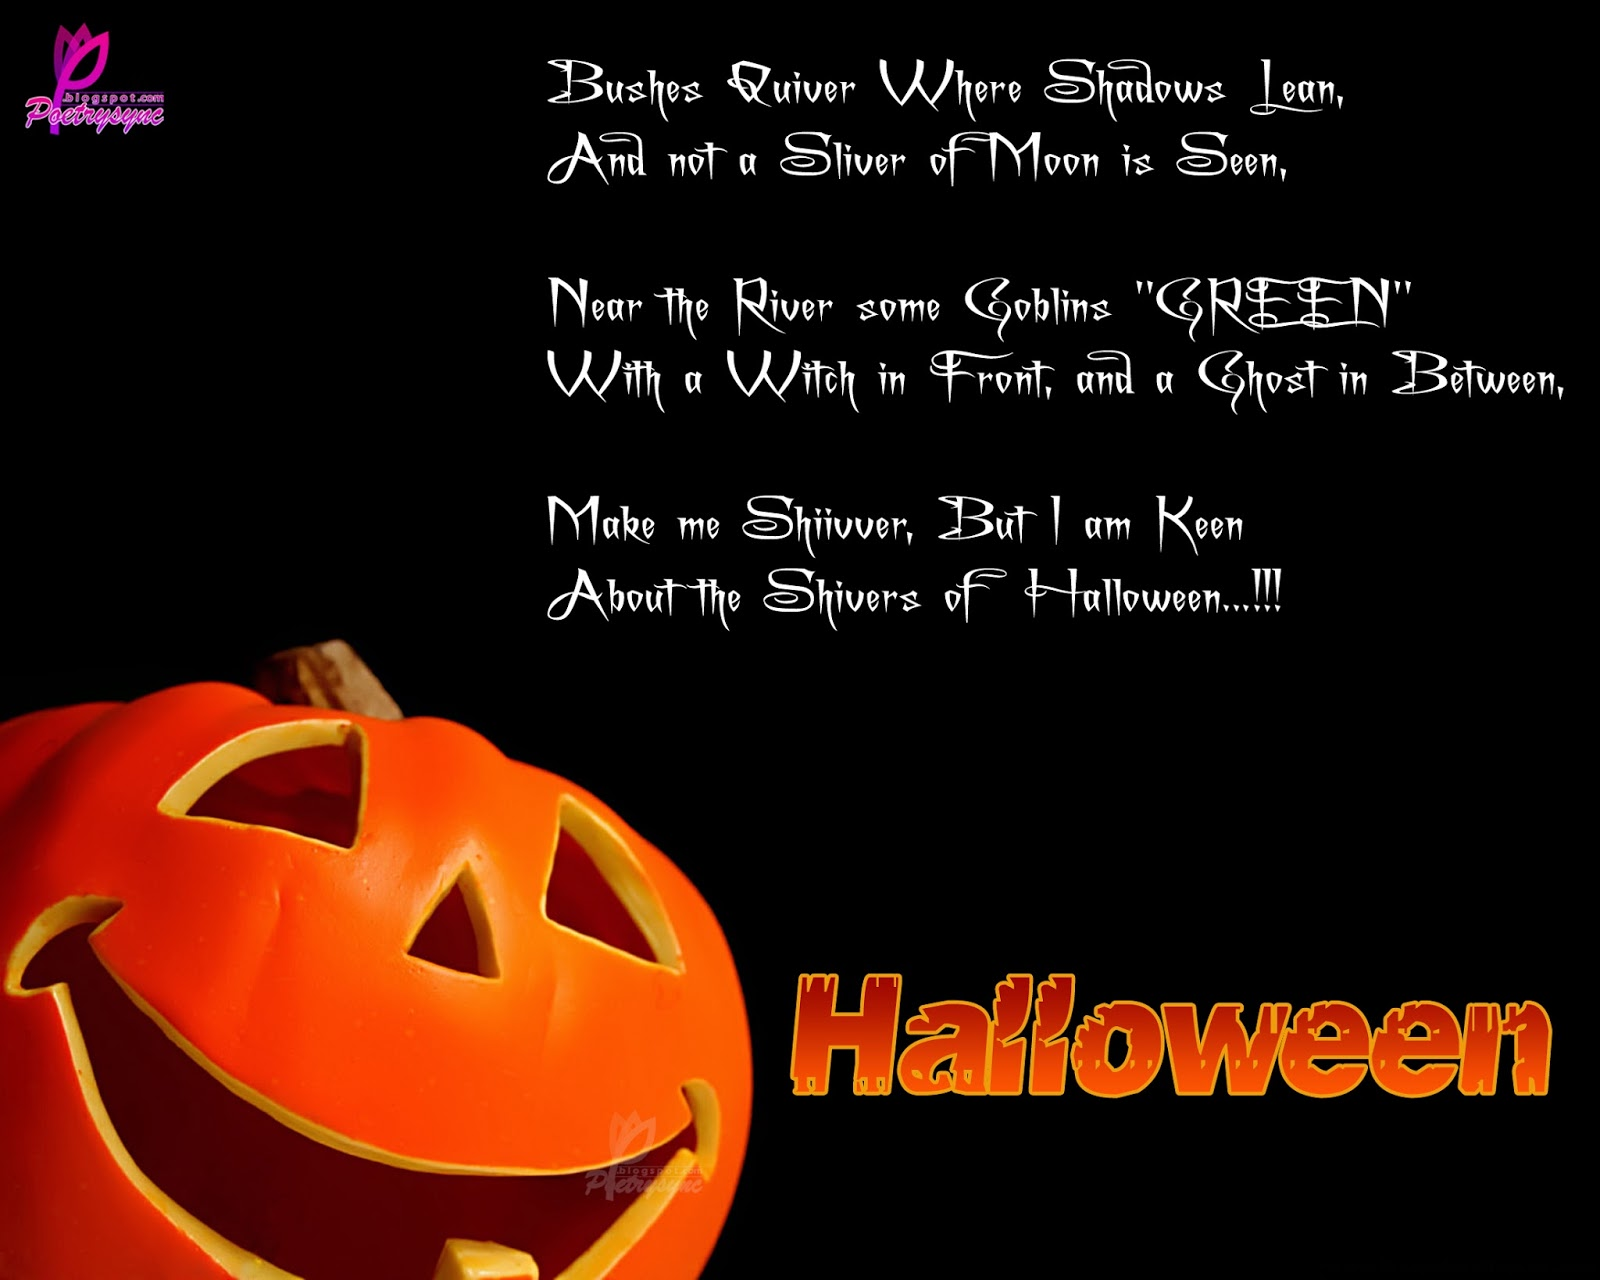 Halloween 2017 wishes quotes phrases text verses for greeting cards halloween wishes quotes phrases text verses for greeting cards m4hsunfo